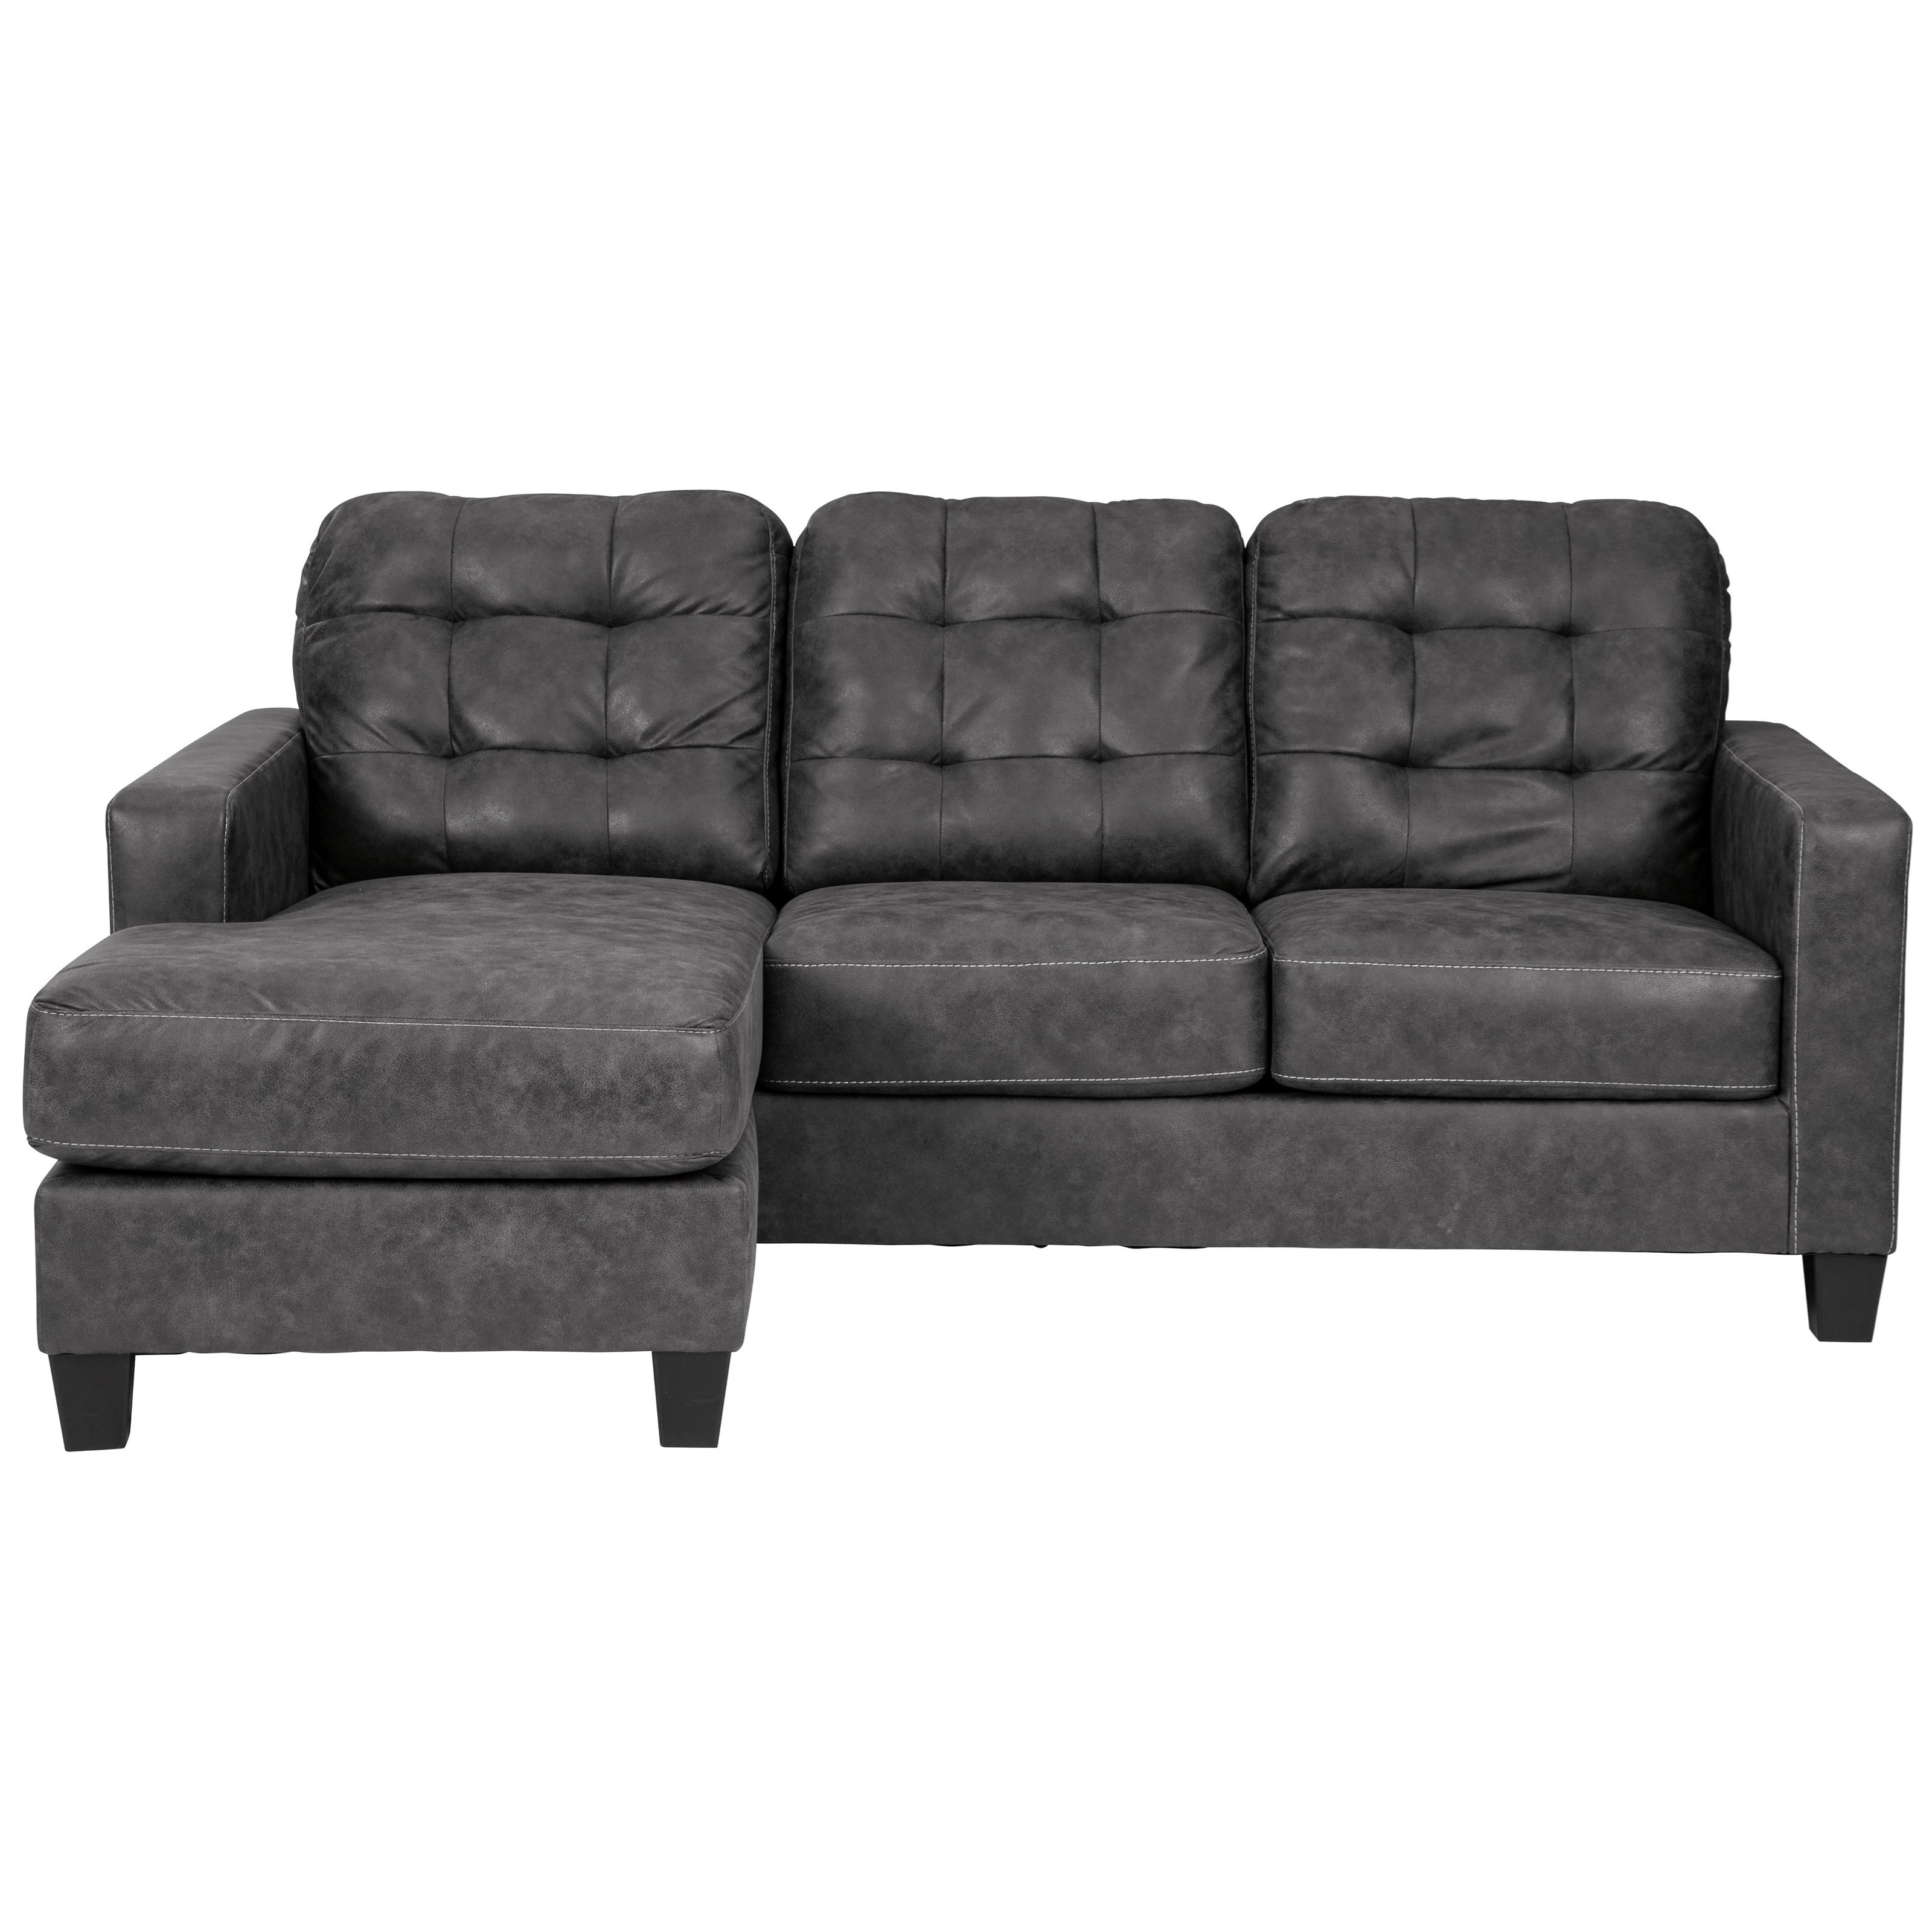 Benchcraft Venaldi 9150168 Contemporary Queen Sleeper Sofa With Chaise Dunk Bright Furniture Sectional Sofas